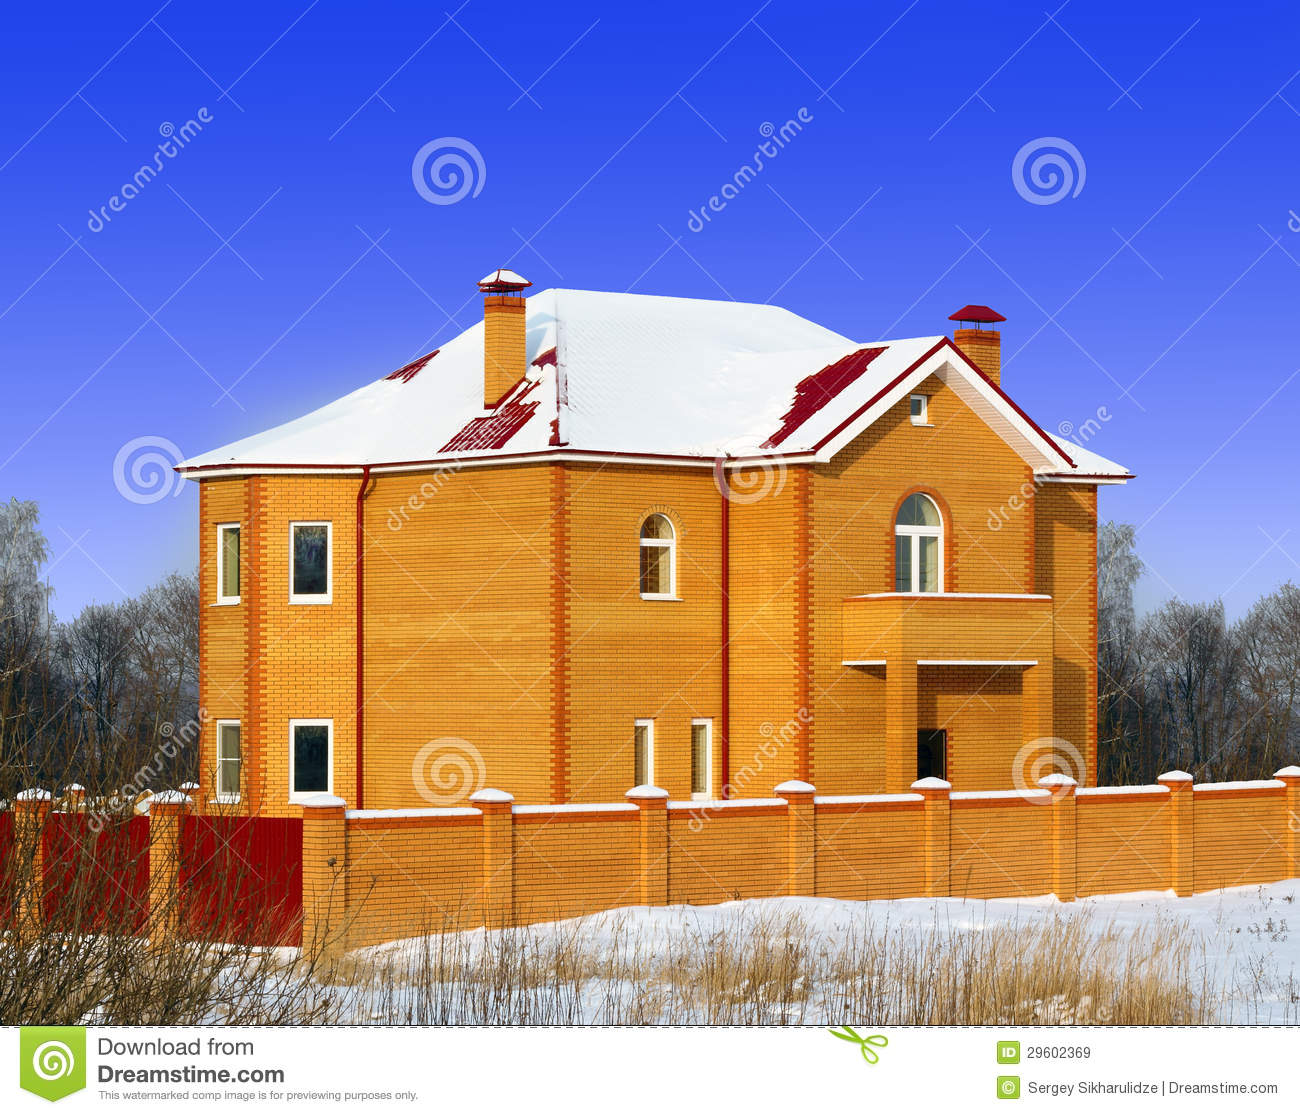 The new brick house with the red roof royalty free stock for Red brick house with metal roof